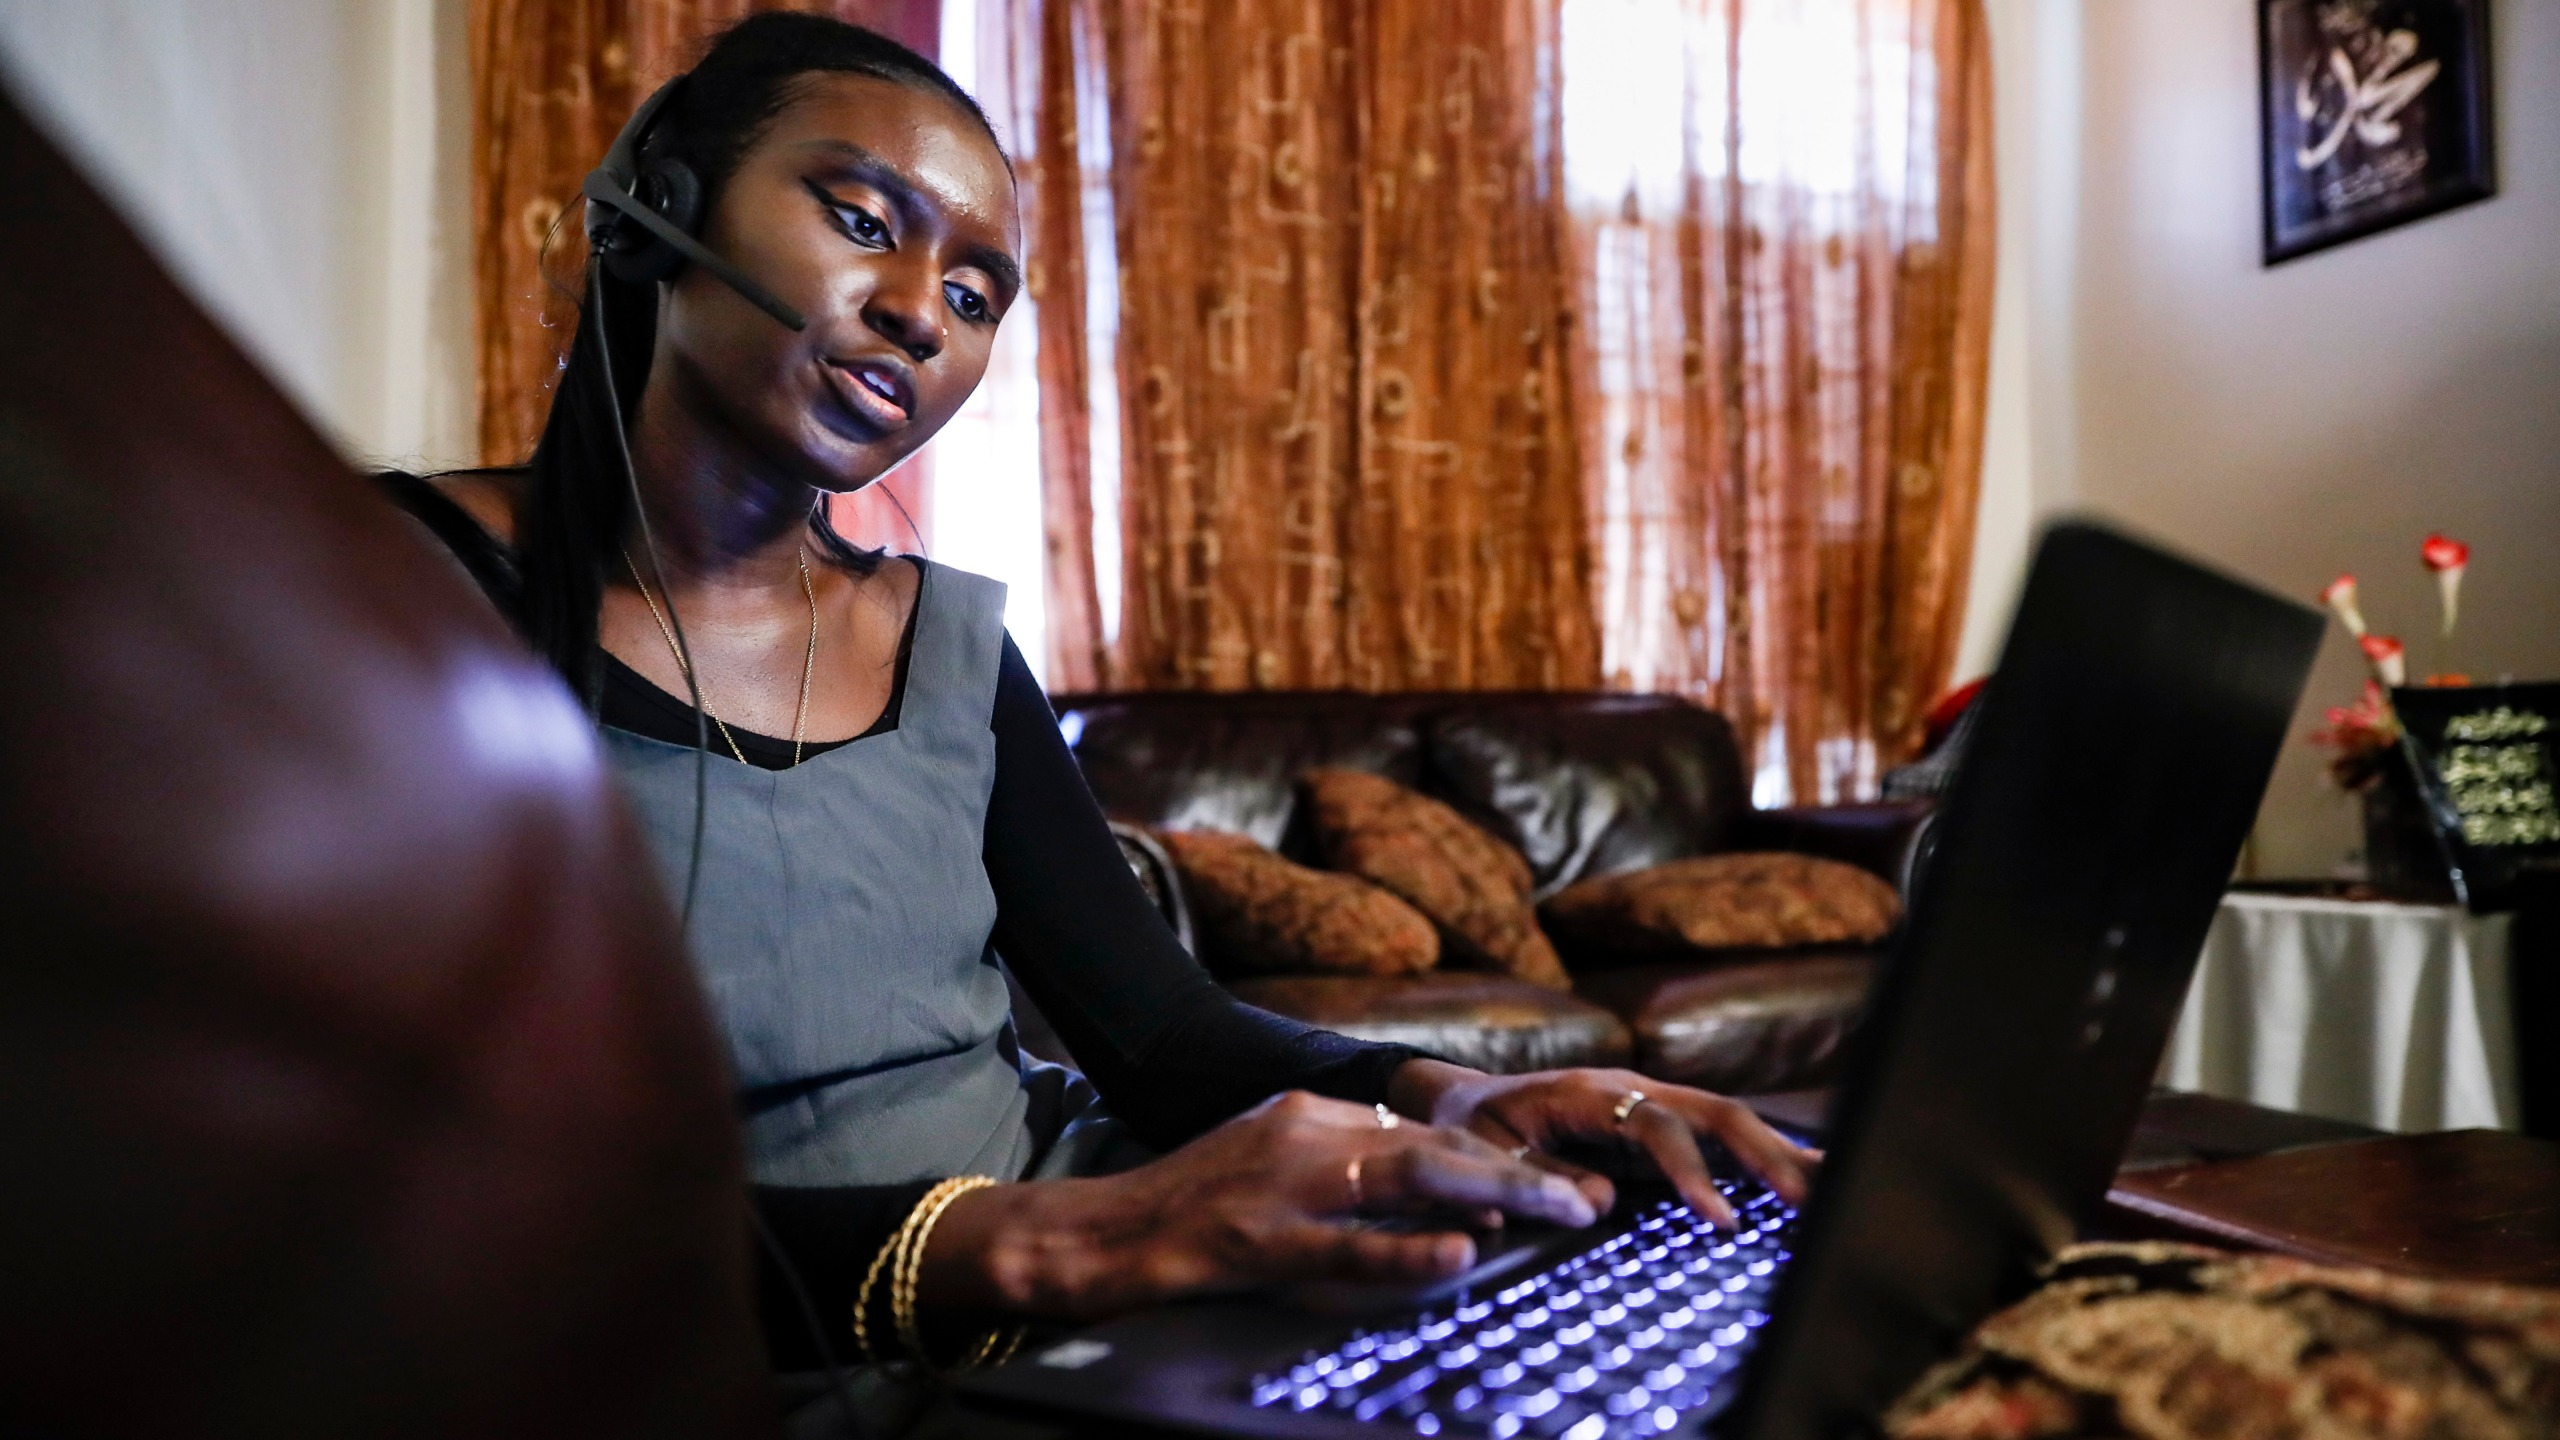 Maryama Diaw, a contact tracer with New York City's Health + Hospitals battling the coronavirus pandemic, sets up her remote calling system at her home before reaching out to potential patients, in New York.